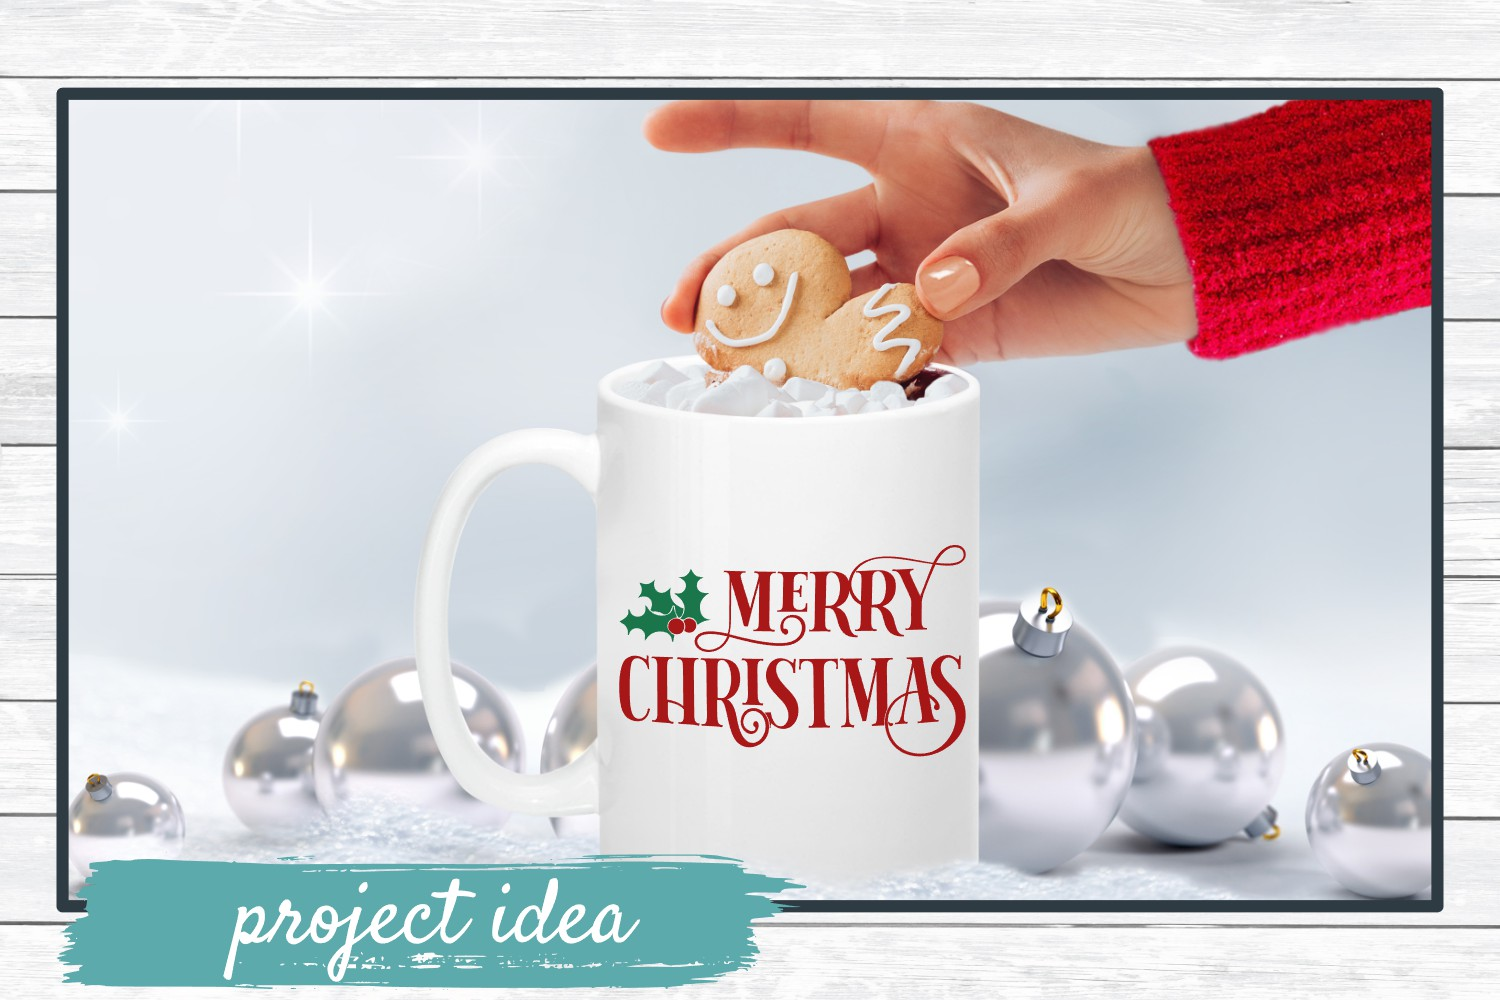 Merry Christmas, Winter Holiday SVG Cut File example image 2